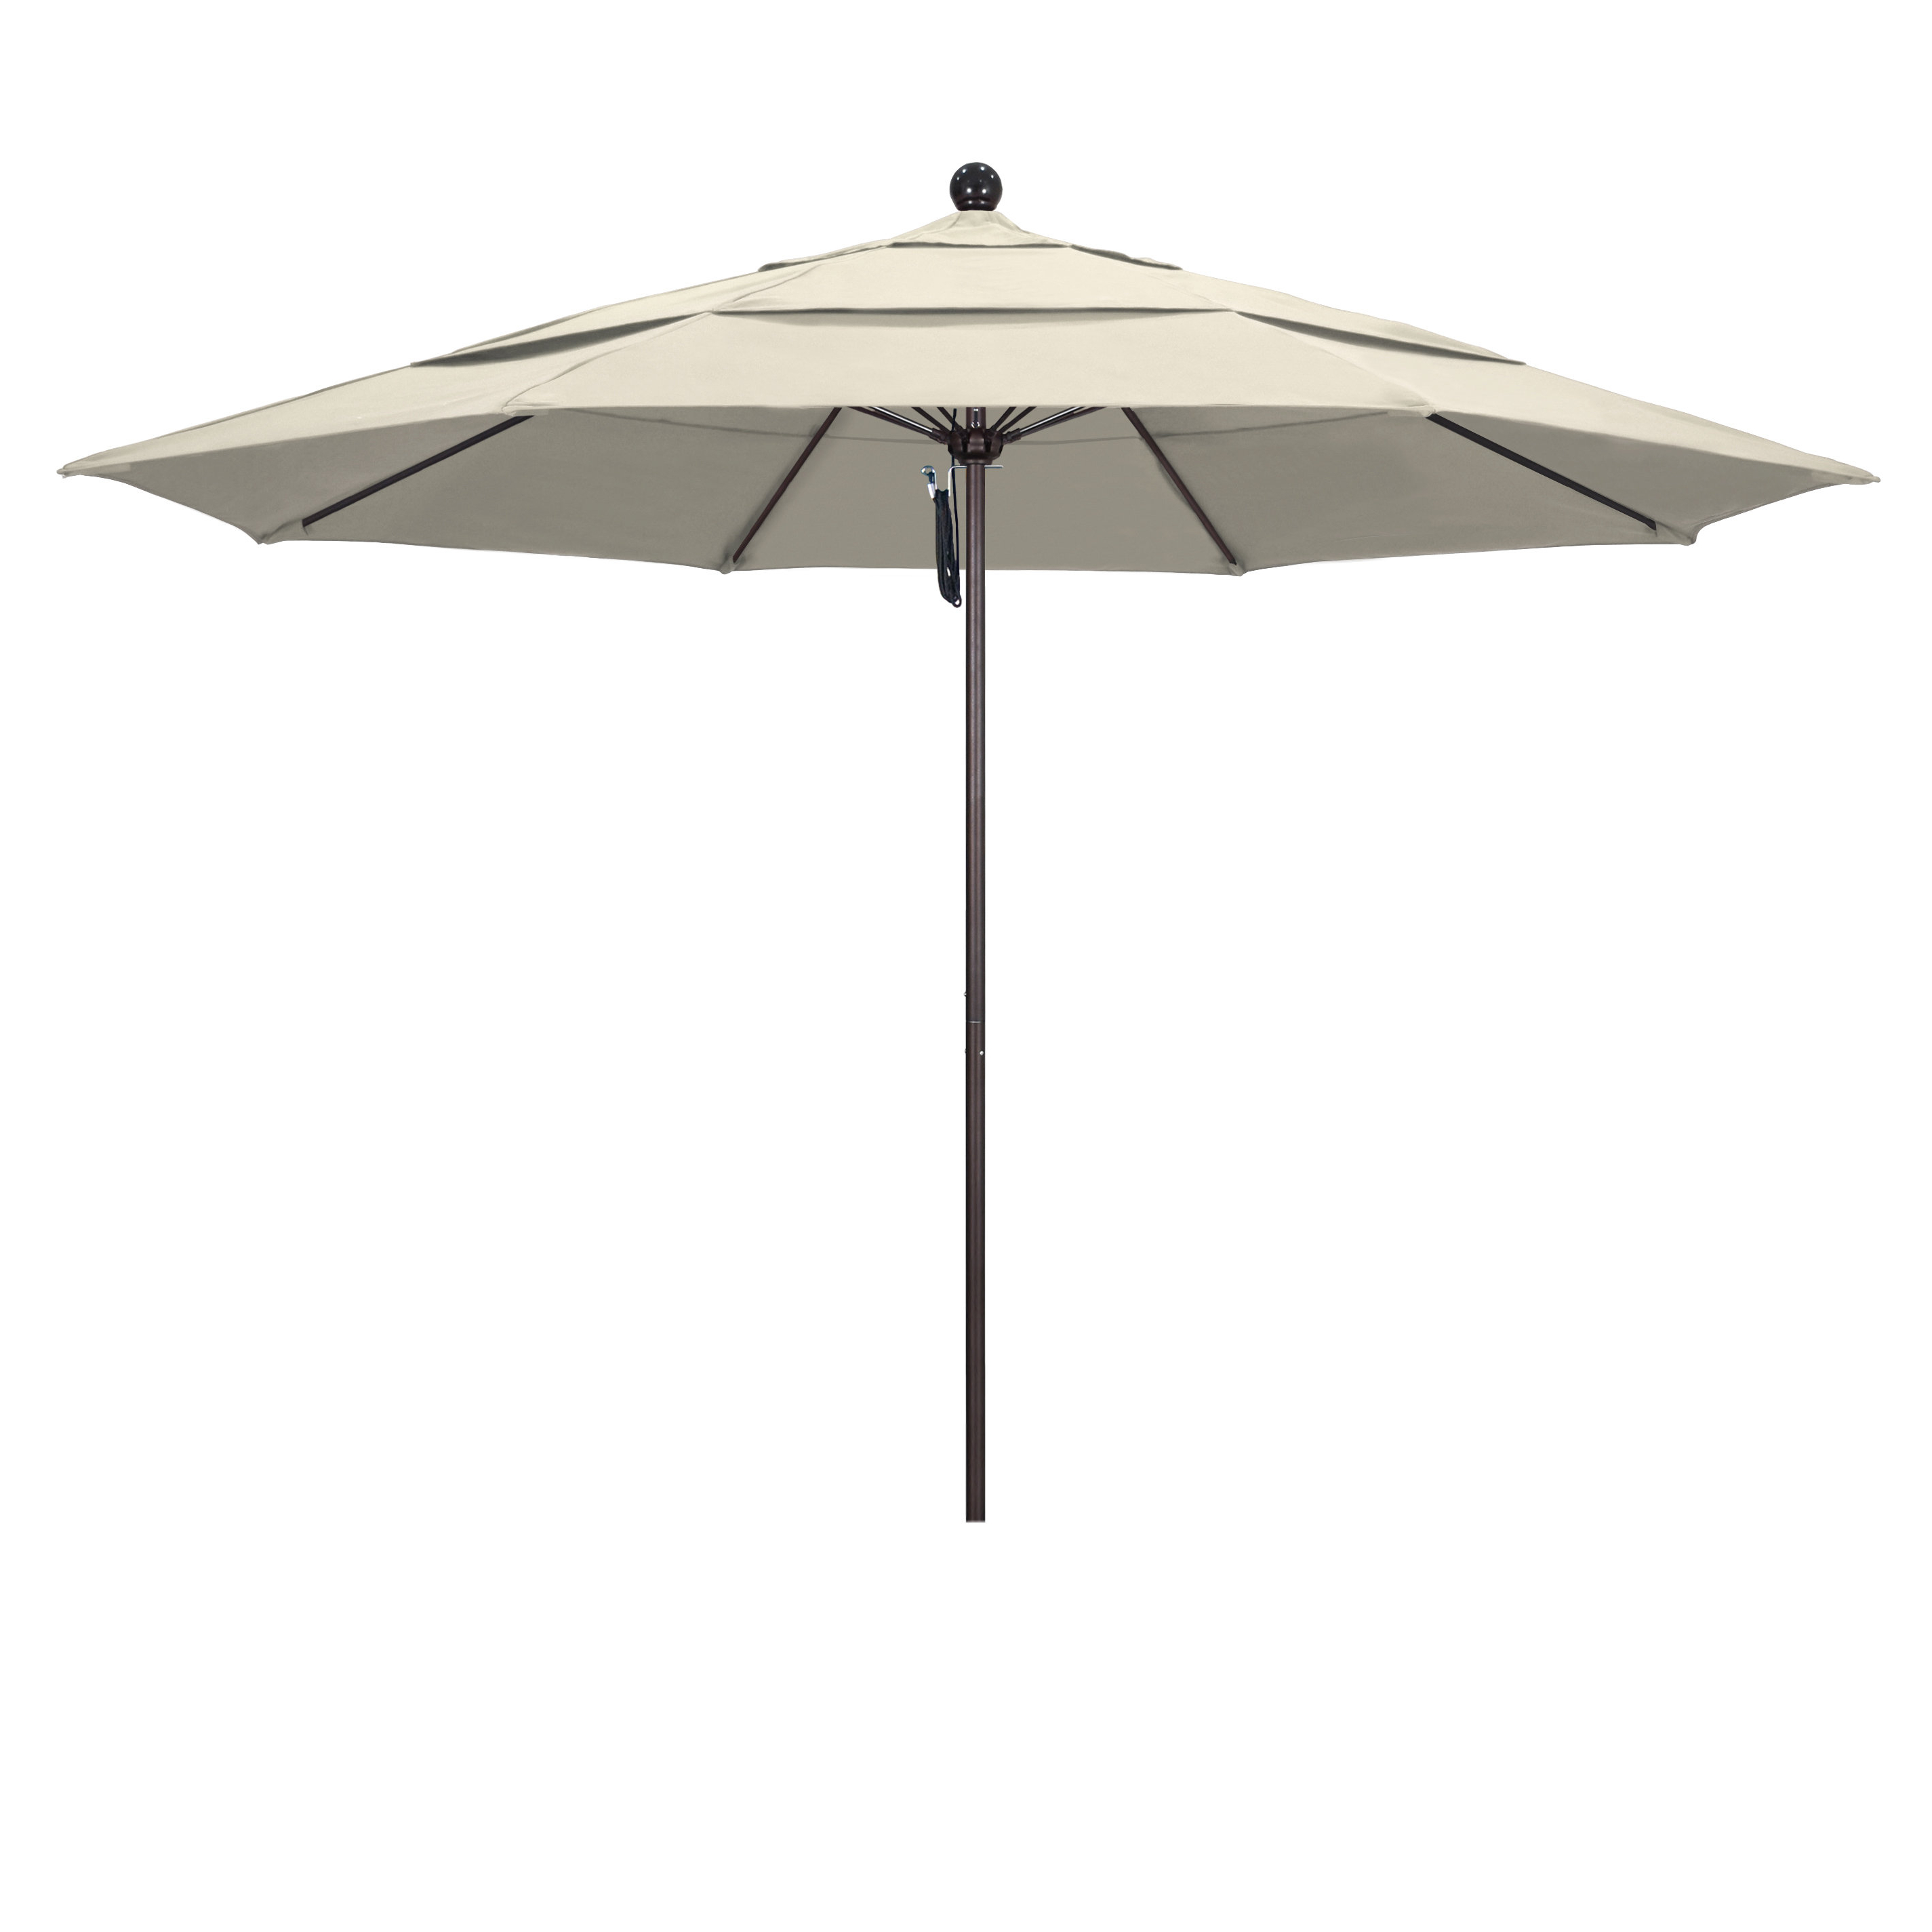 Duxbury 11' Market Umbrella With Regard To Well Known Mcdougal Market Umbrellas (View 3 of 20)